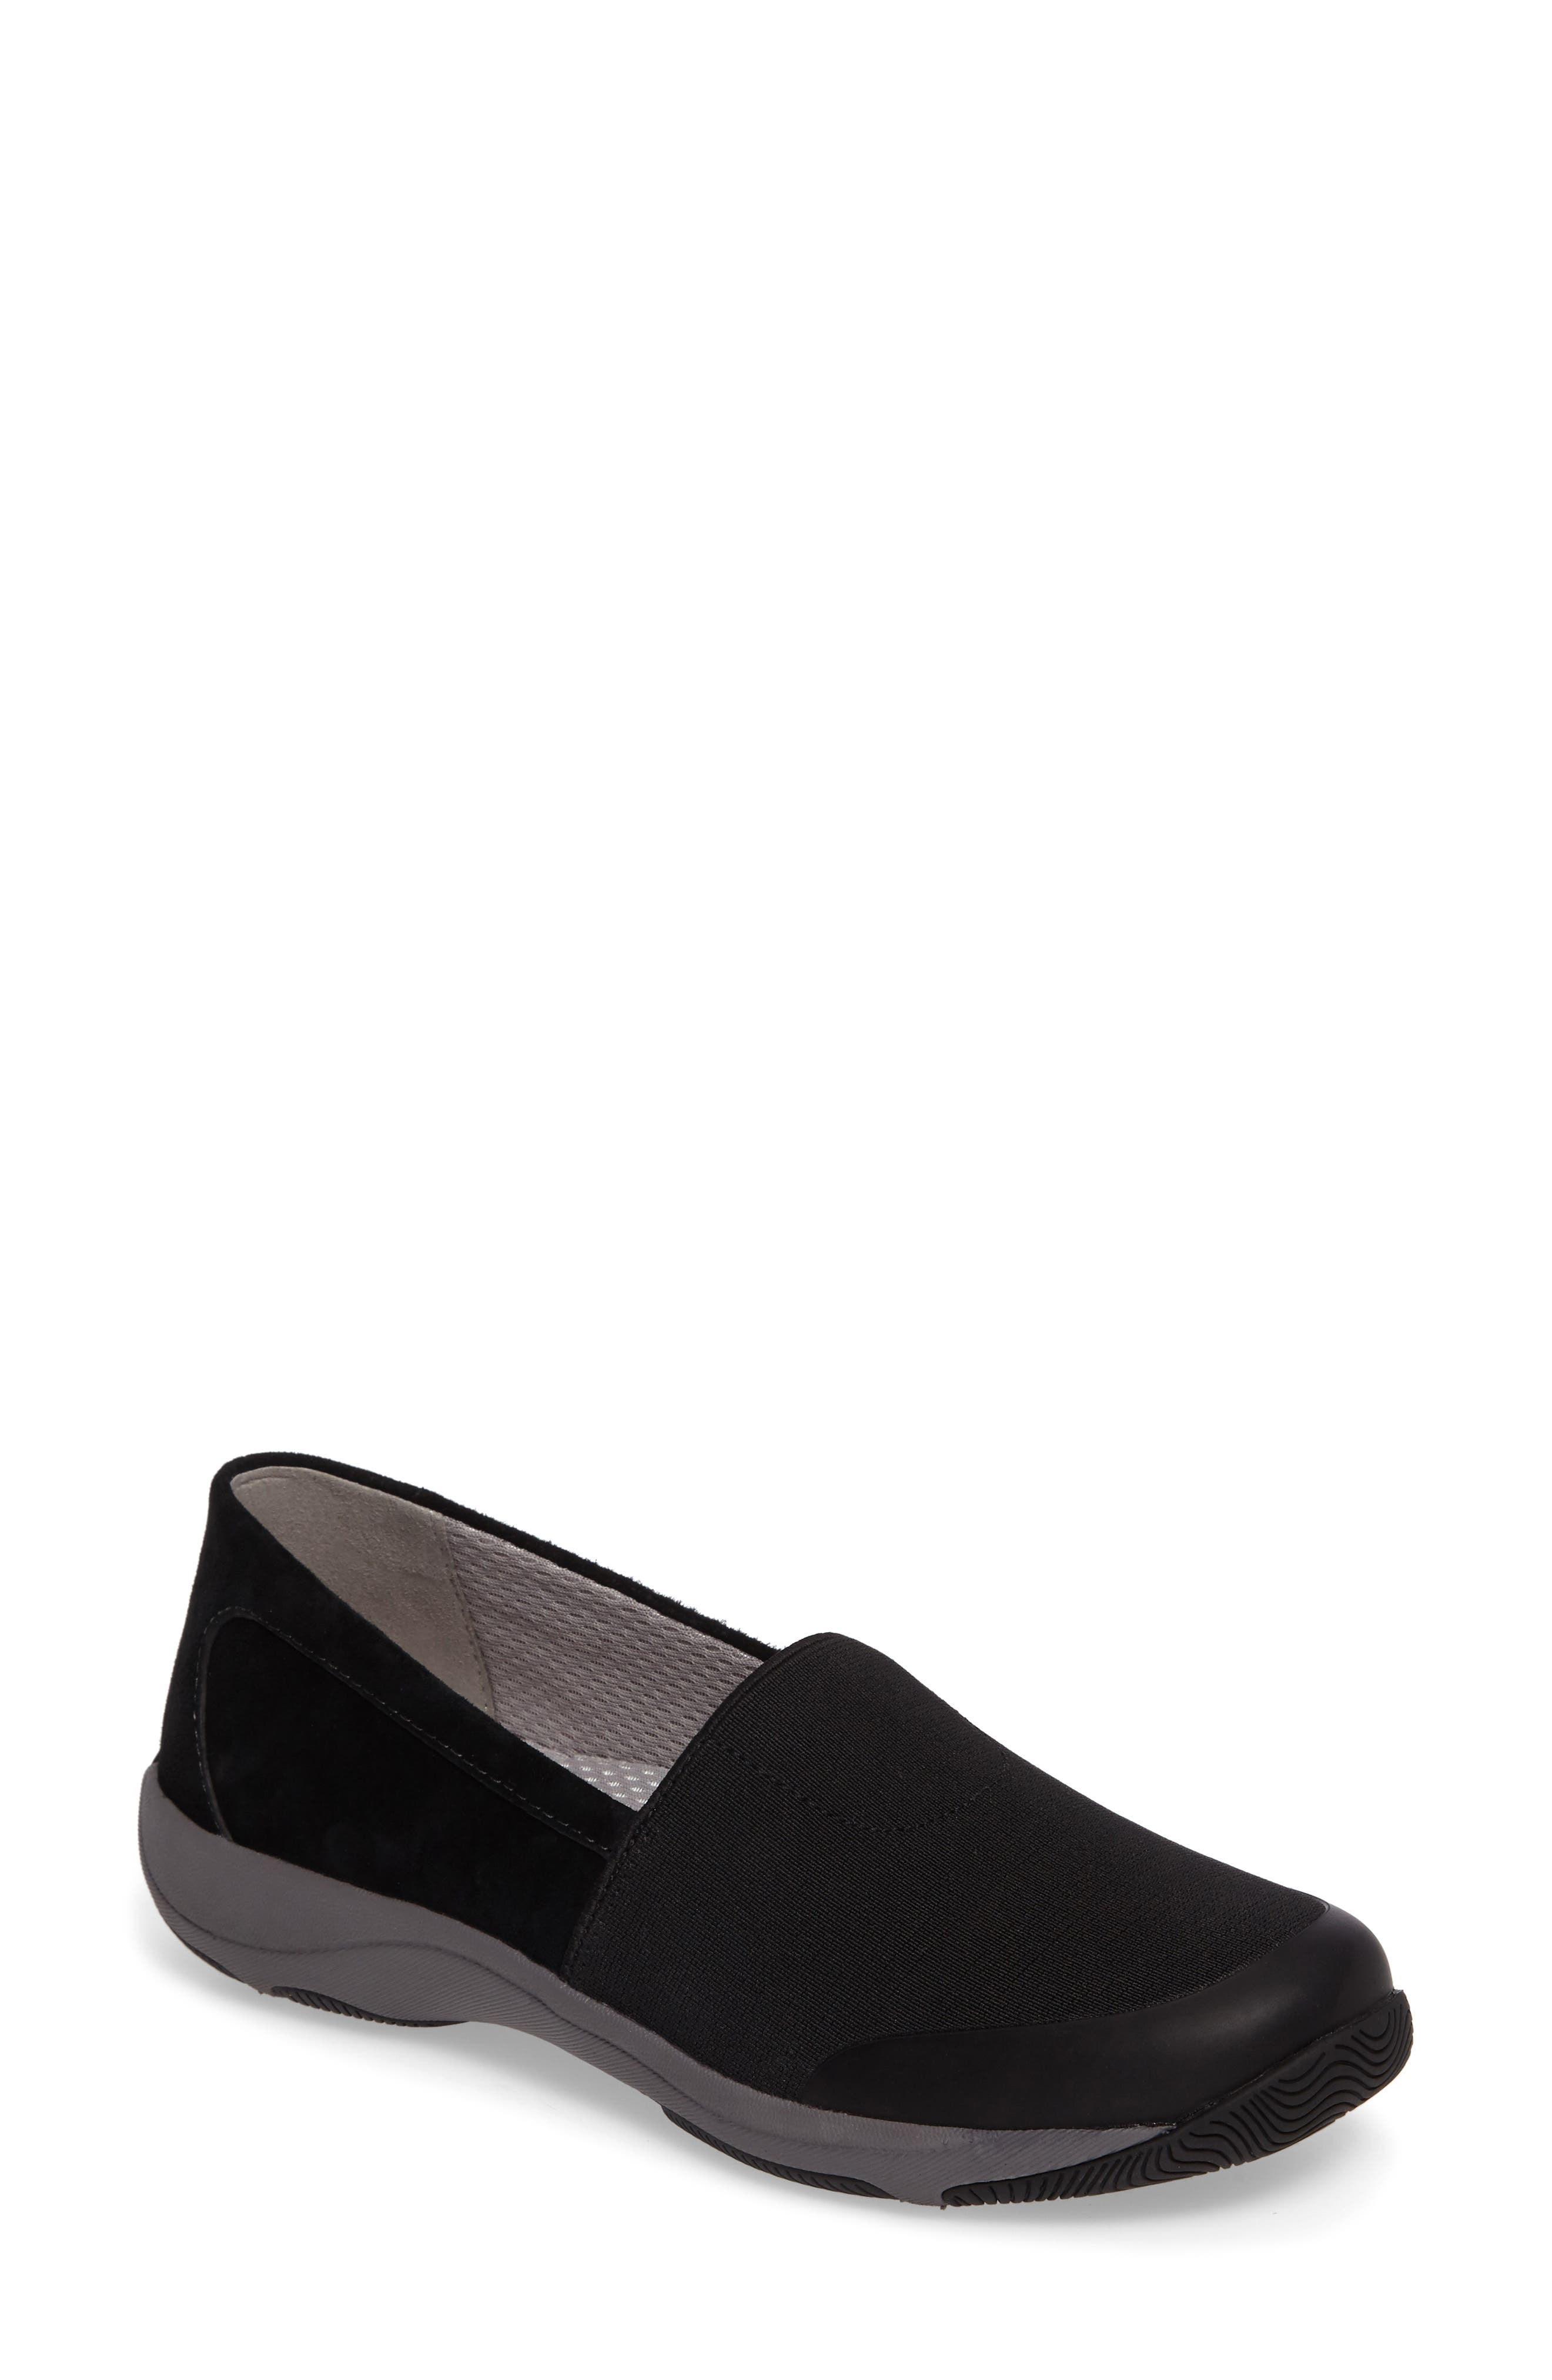 Dansko Harriet Slip-On Sneaker (Women)